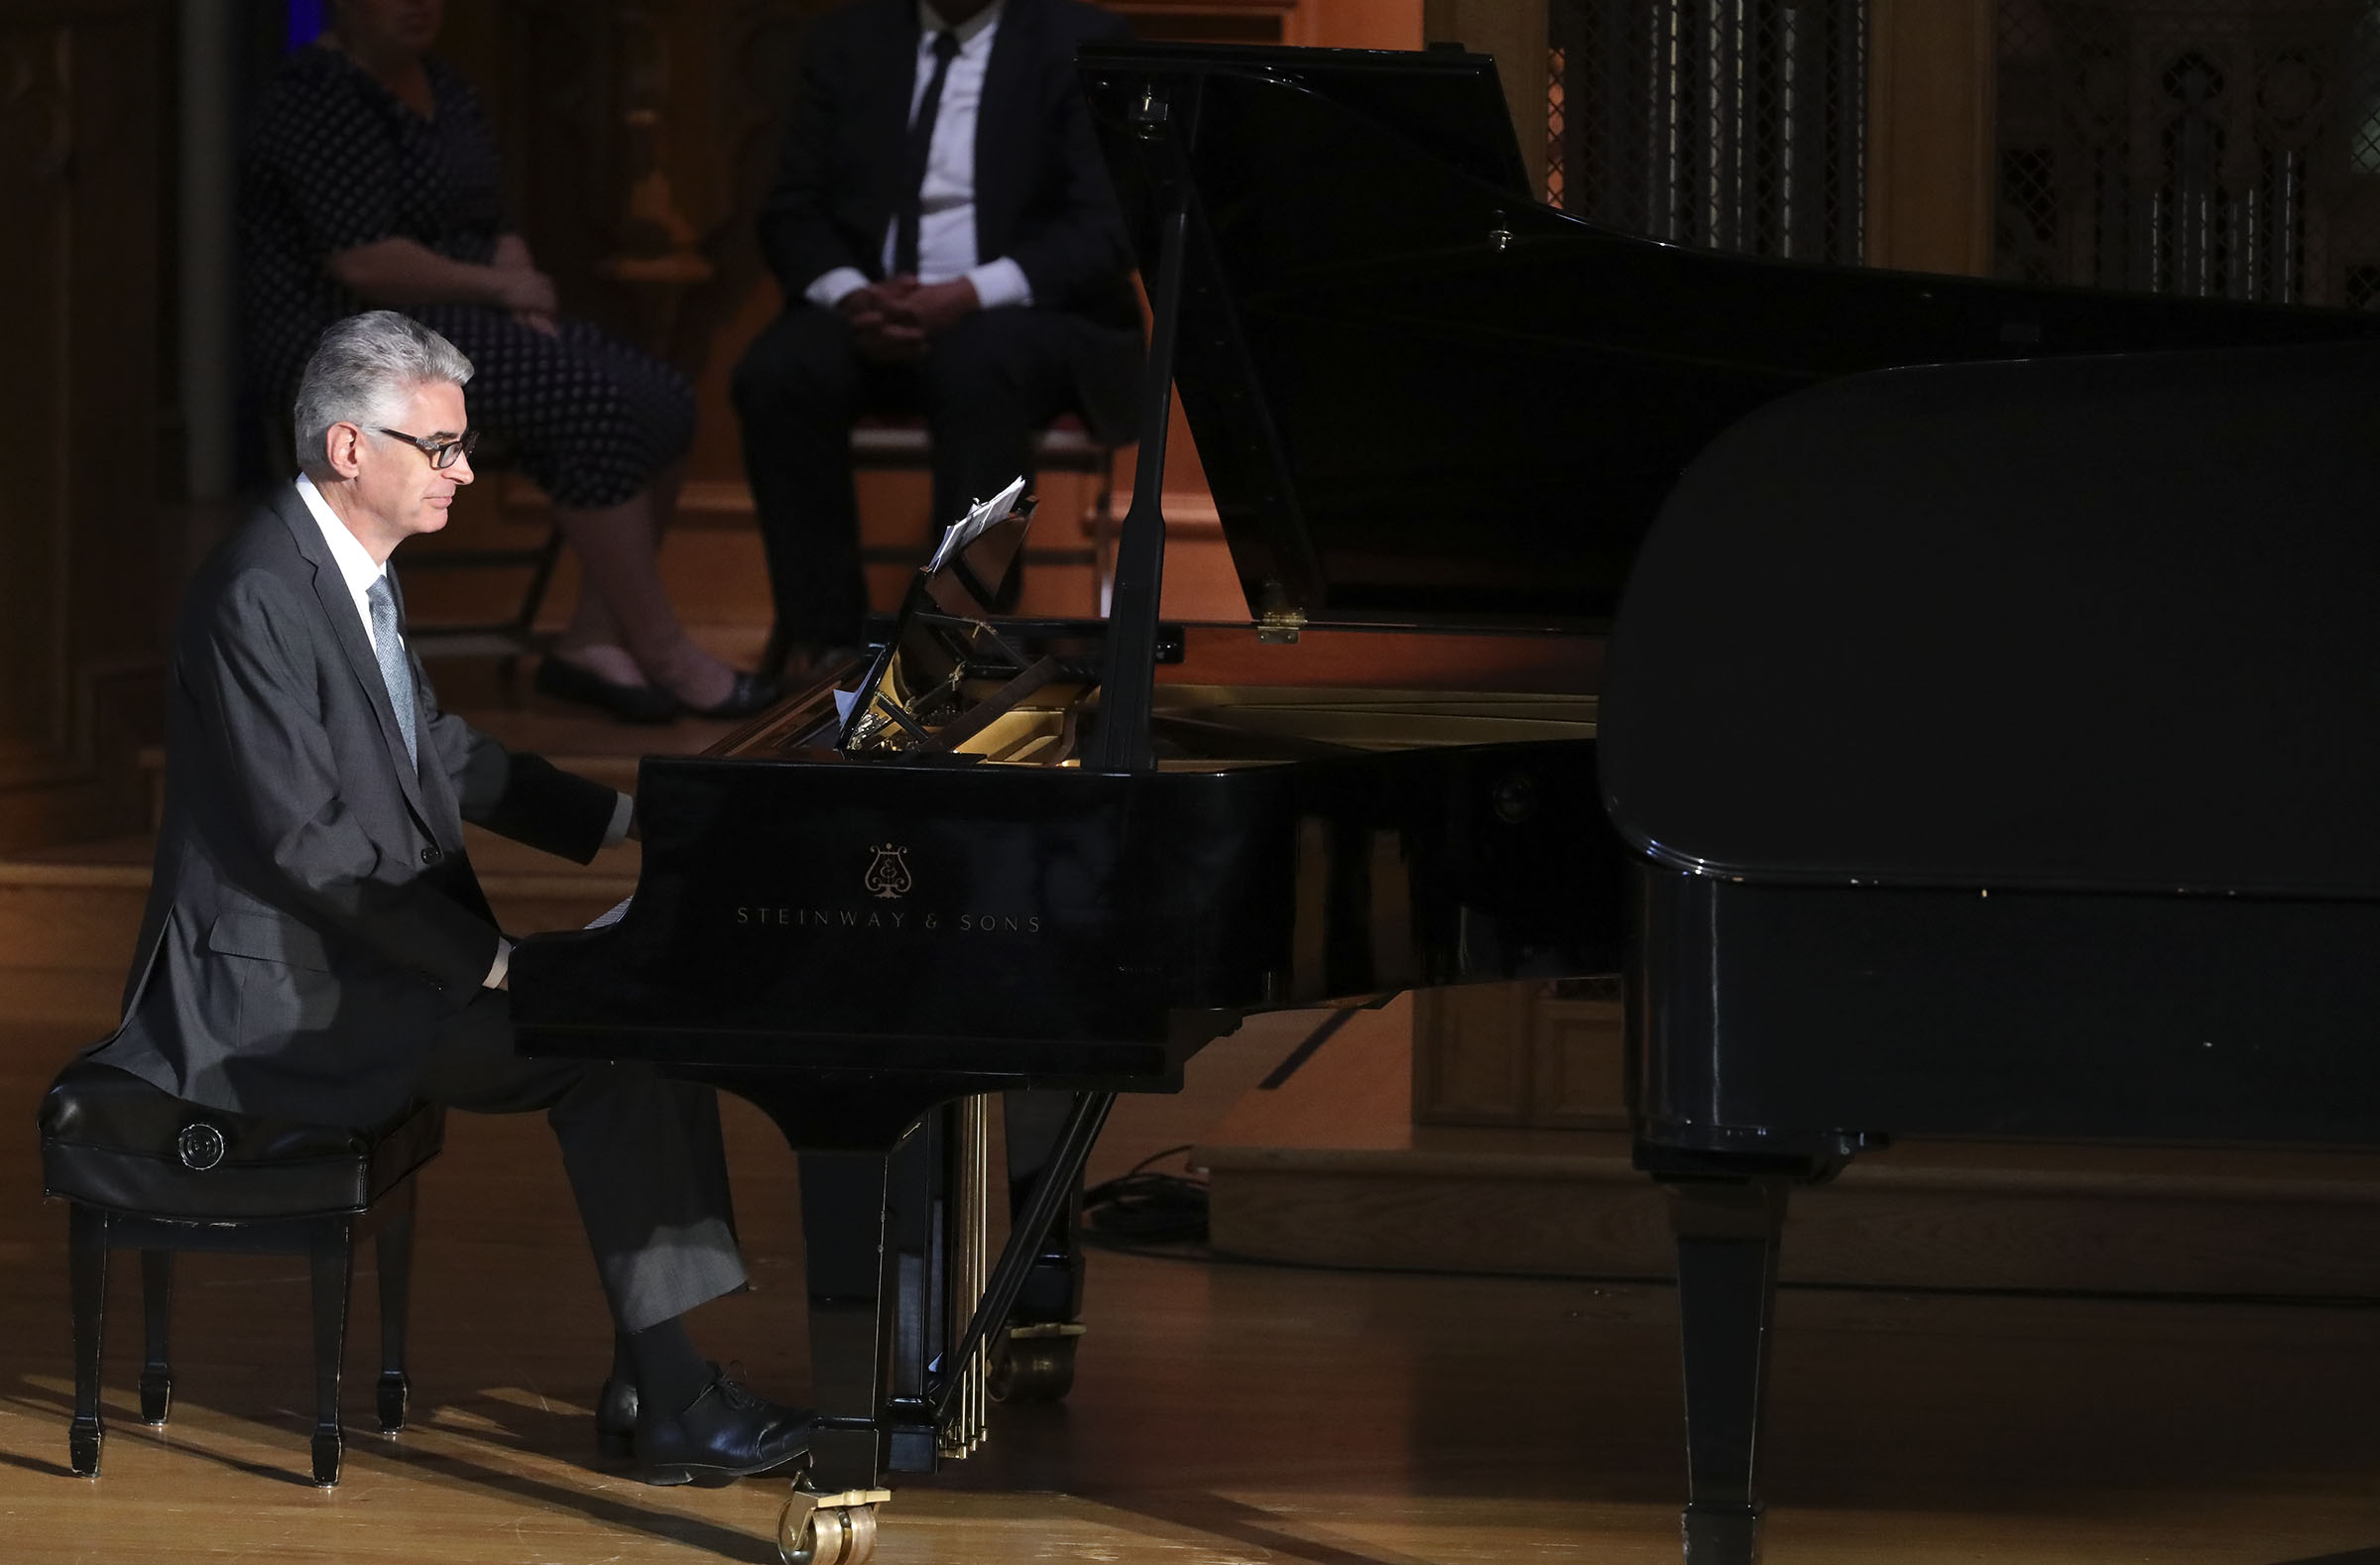 Presiding Bishop Gérald Caussé plays a piano duet with Nicolas Giusti after speaking to LDS Business College students during a devotional at Assembly Hall on Temple Square in Salt Lake City on Tuesday, Sept. 25, 2018.